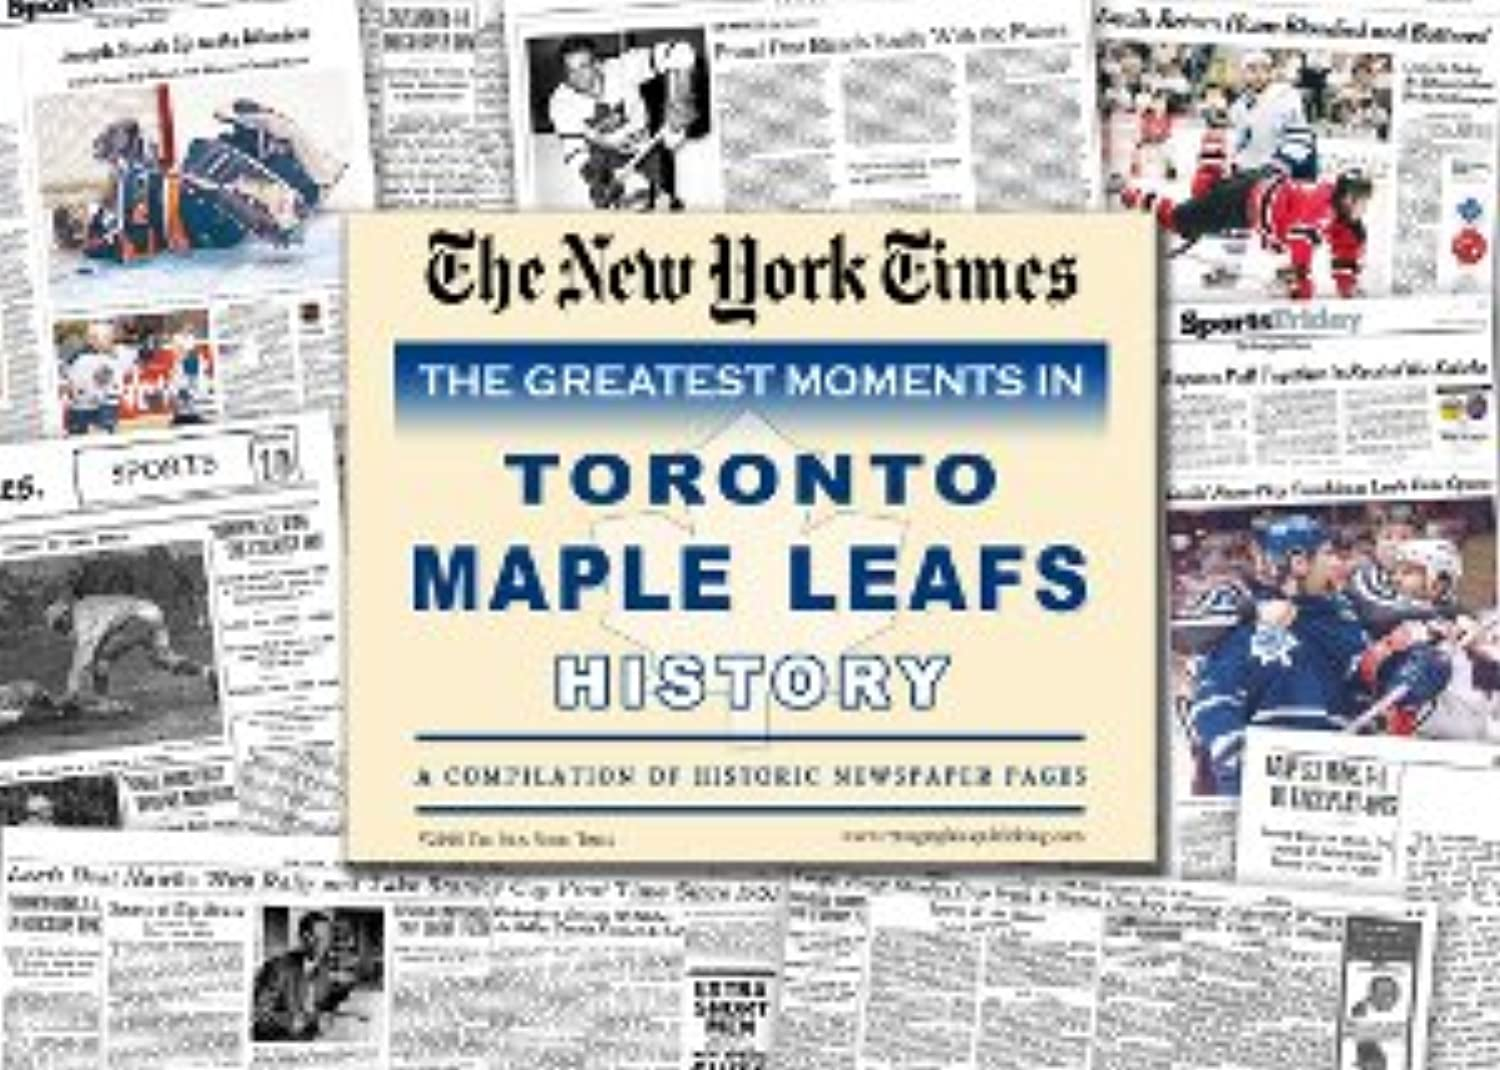 Tgoldnto Maple Leafs Hockey Greatest Moments in History New York Times Historic Newspaper Compilation